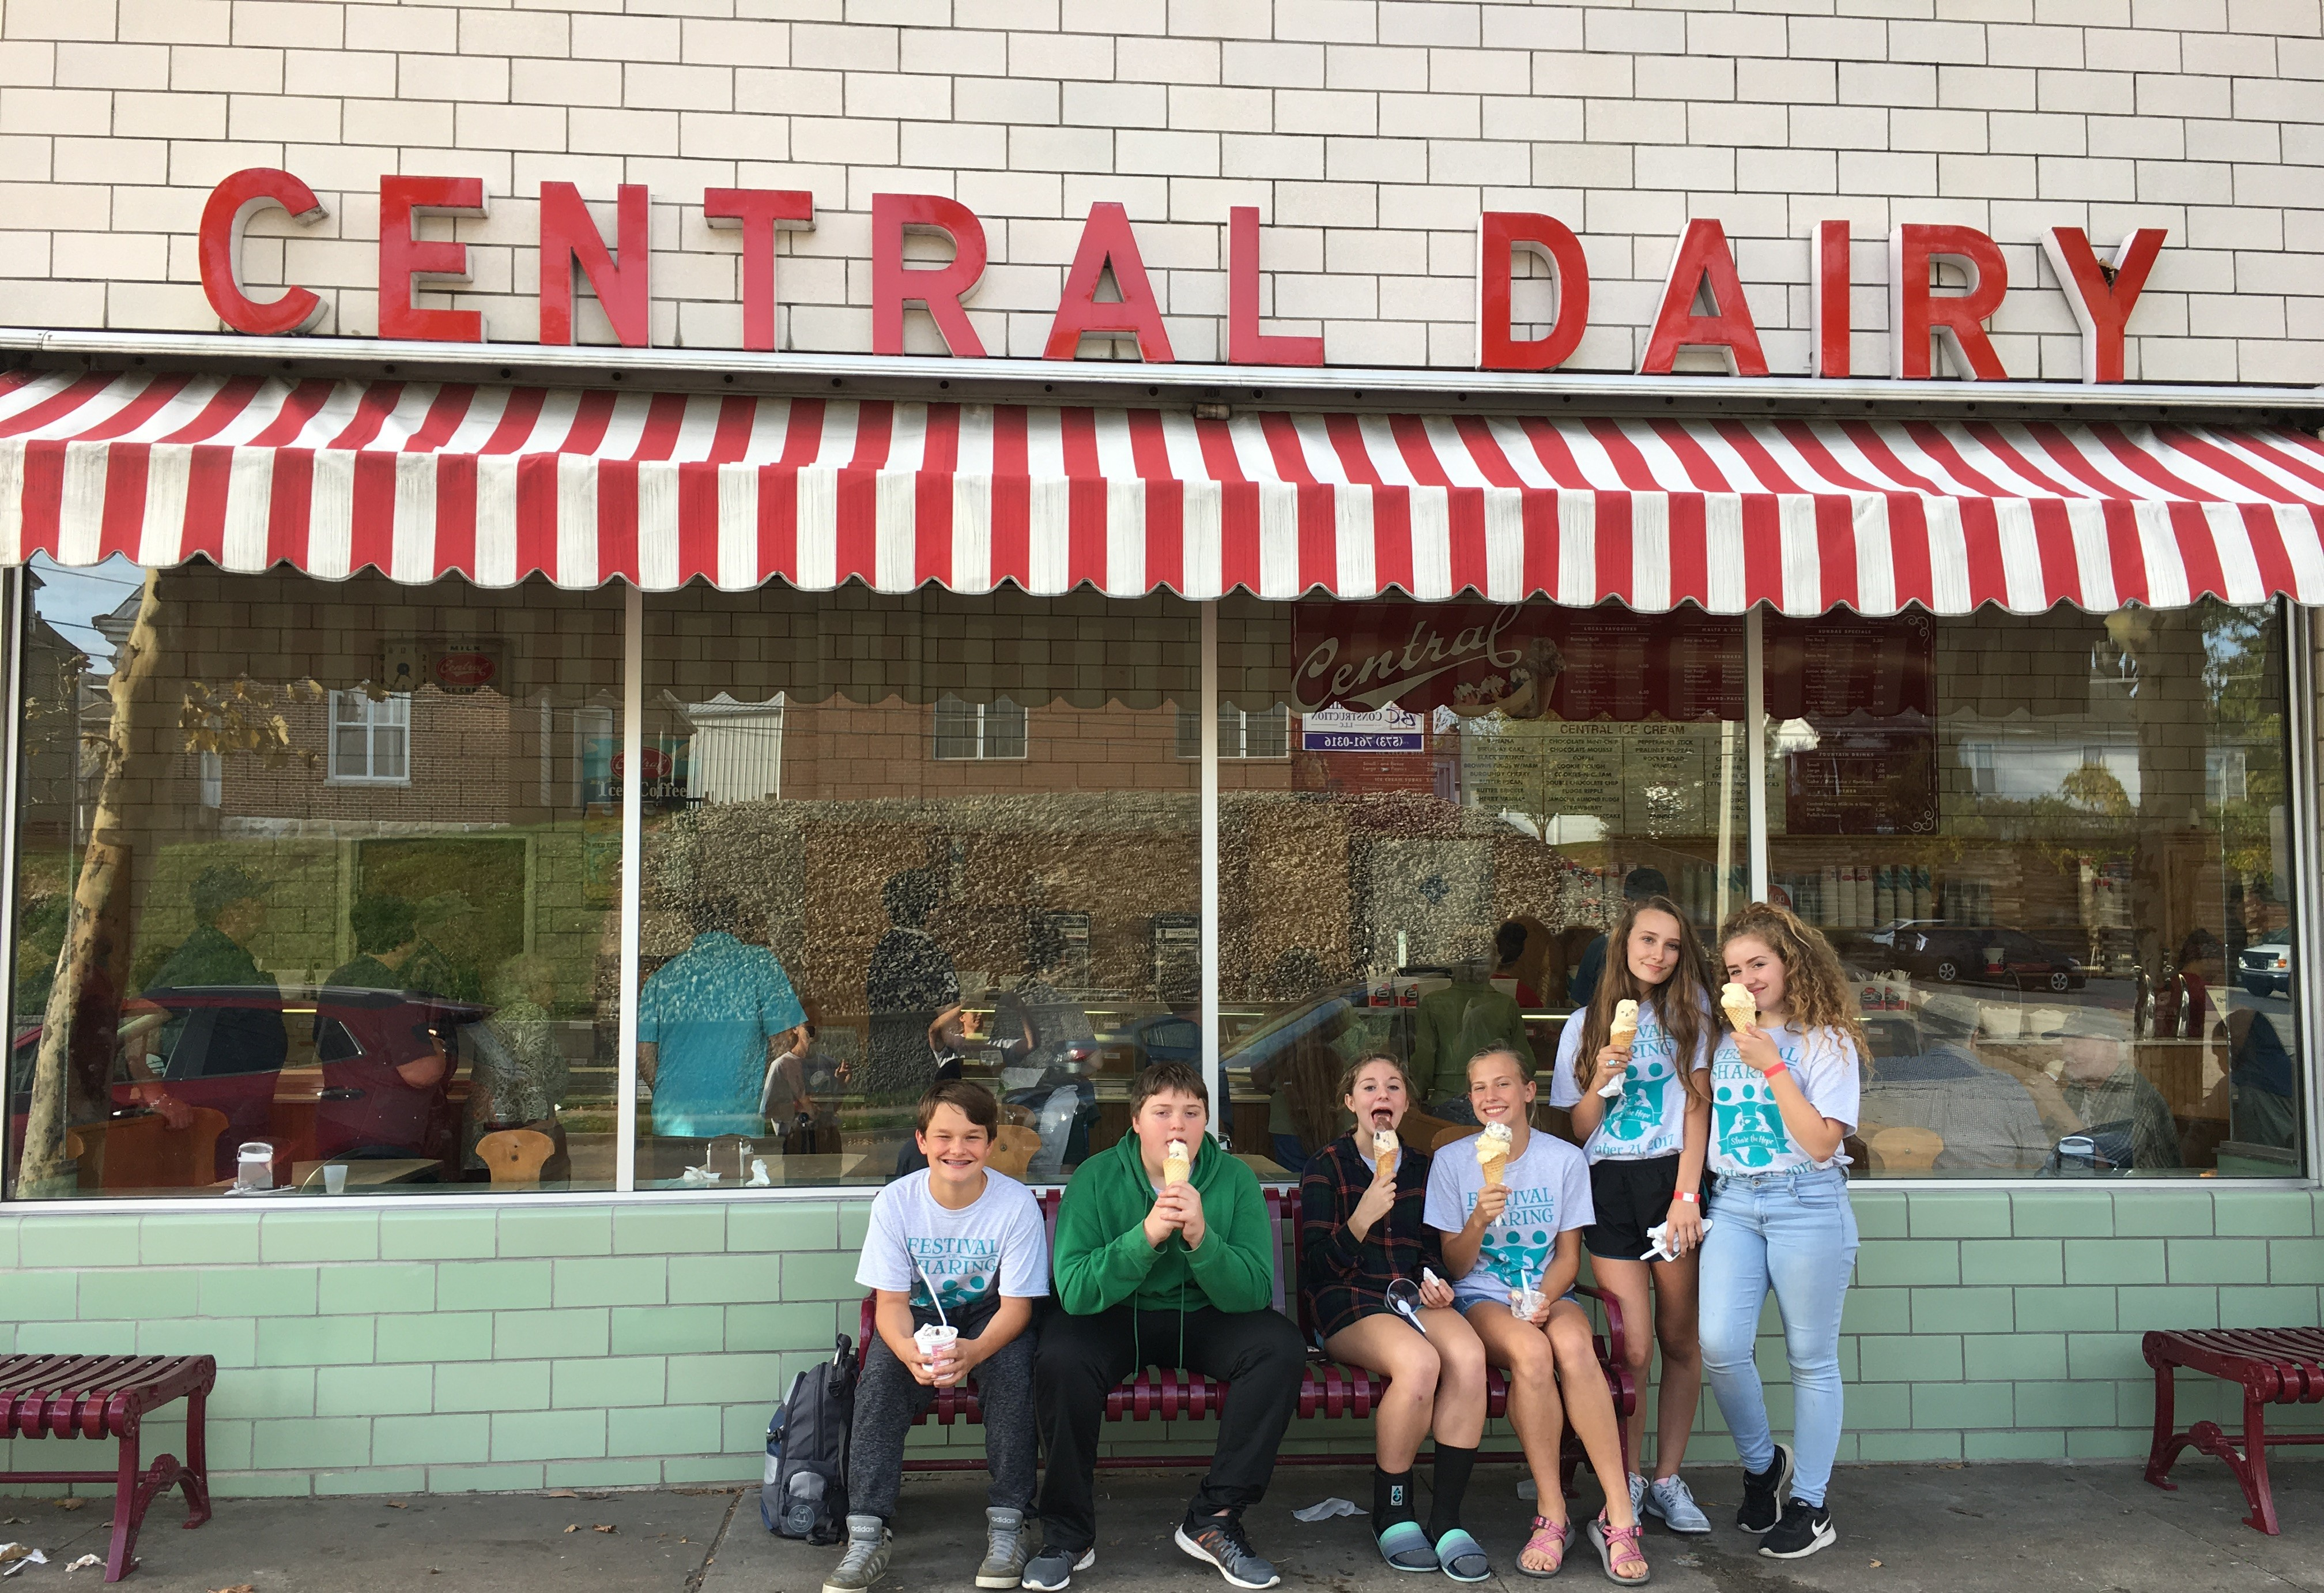 20 central dairy